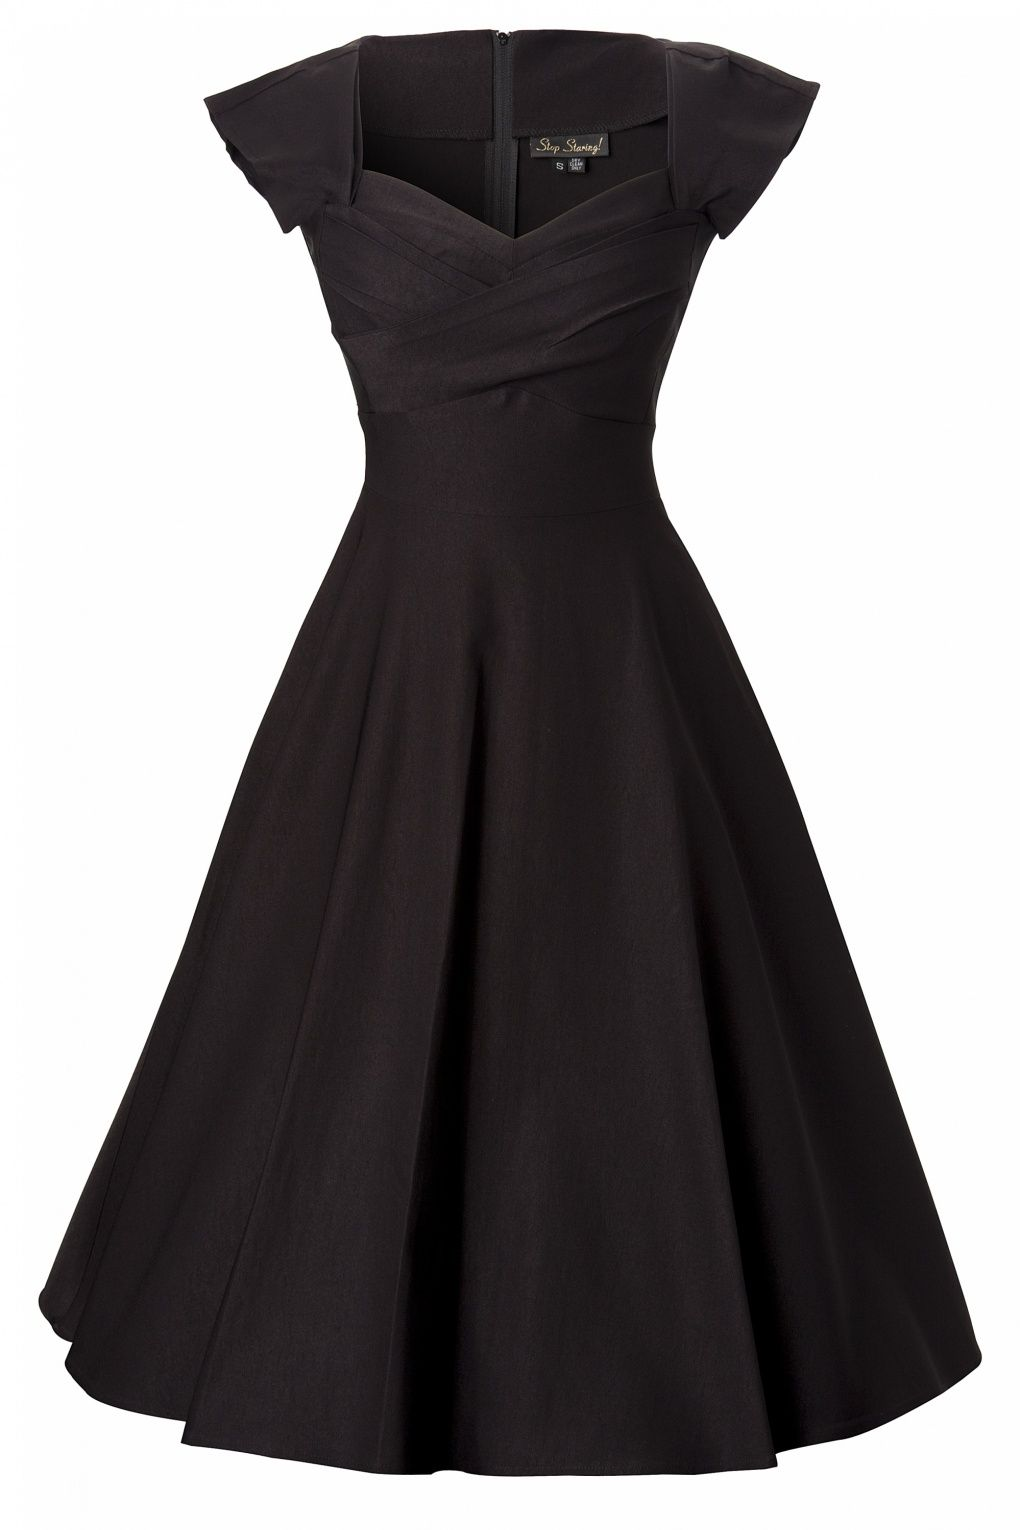 50s Mad Men Swing Dress in Black | Pinterest | Kleider, Kleine ...